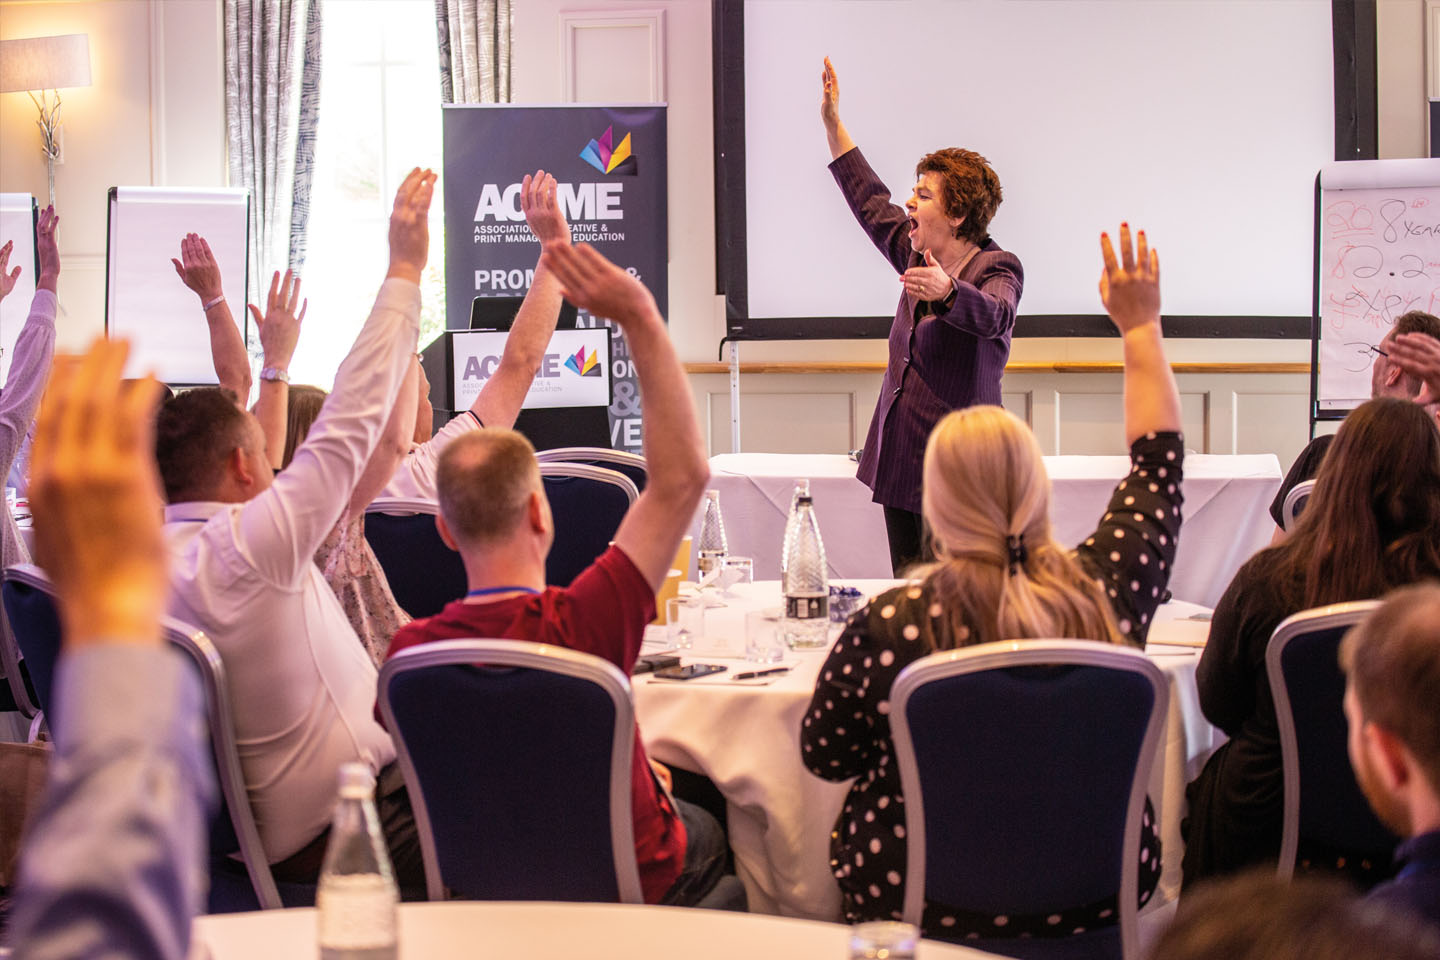 Kate asking 'Who feels part of the ACPME family?' at conference